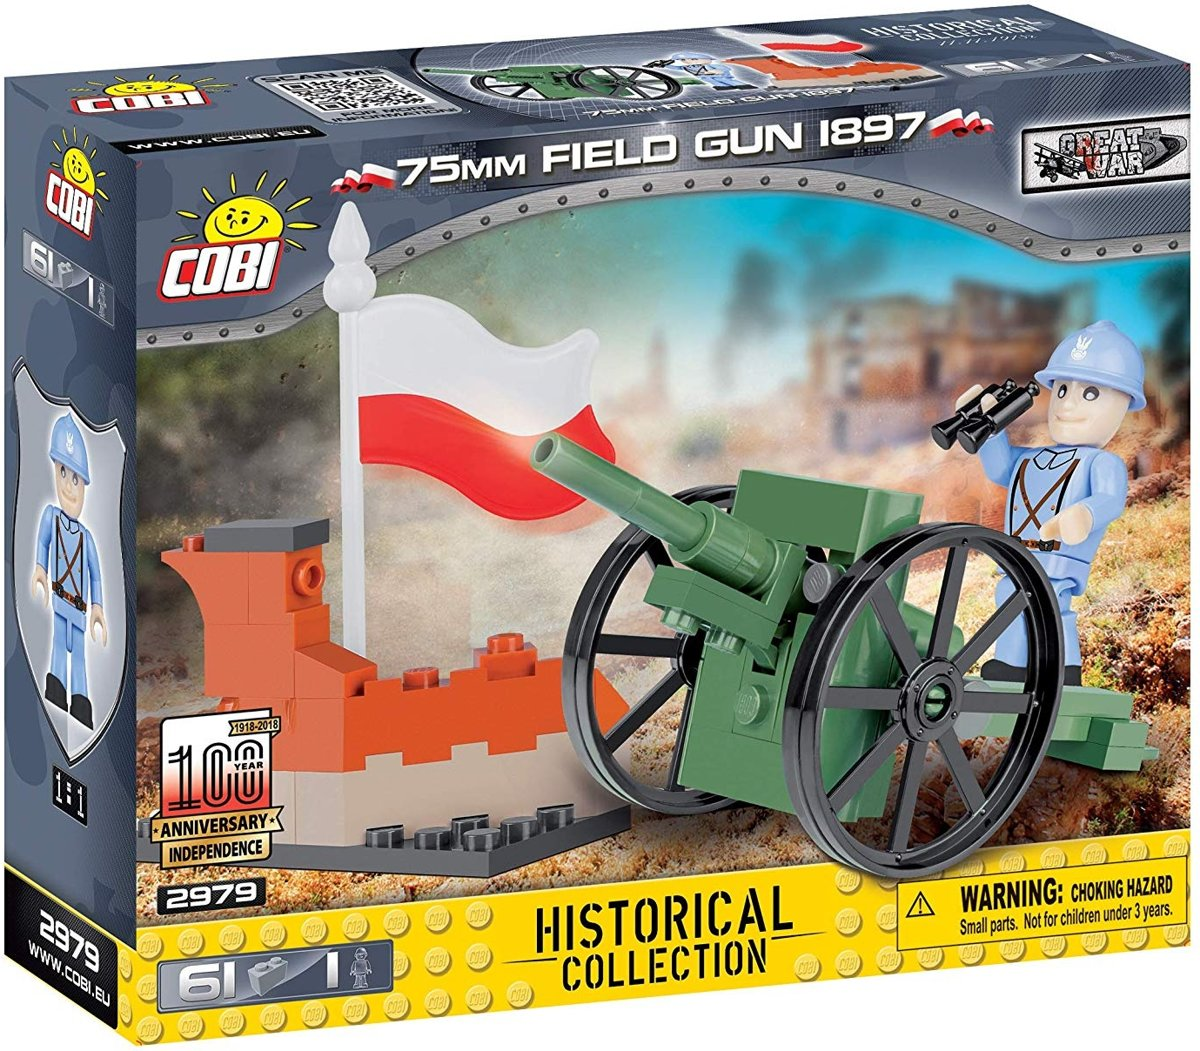 Cobi 61 Pcs Small Army /2979/ 75Mm Field Gun 1897